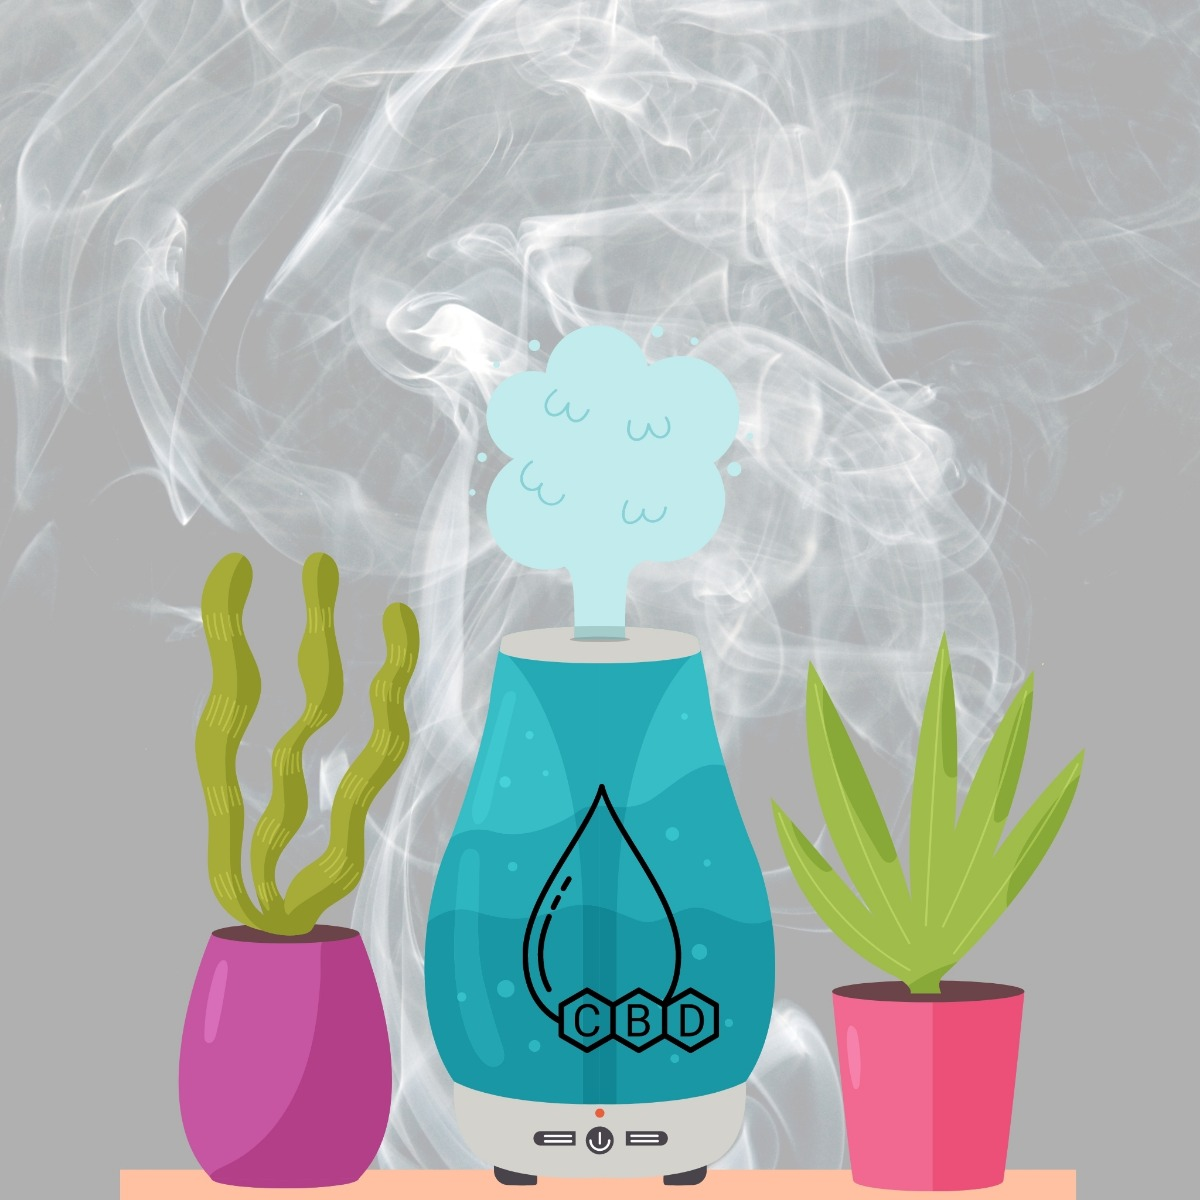 CBD labeled blue air diffuser with smoke behind it